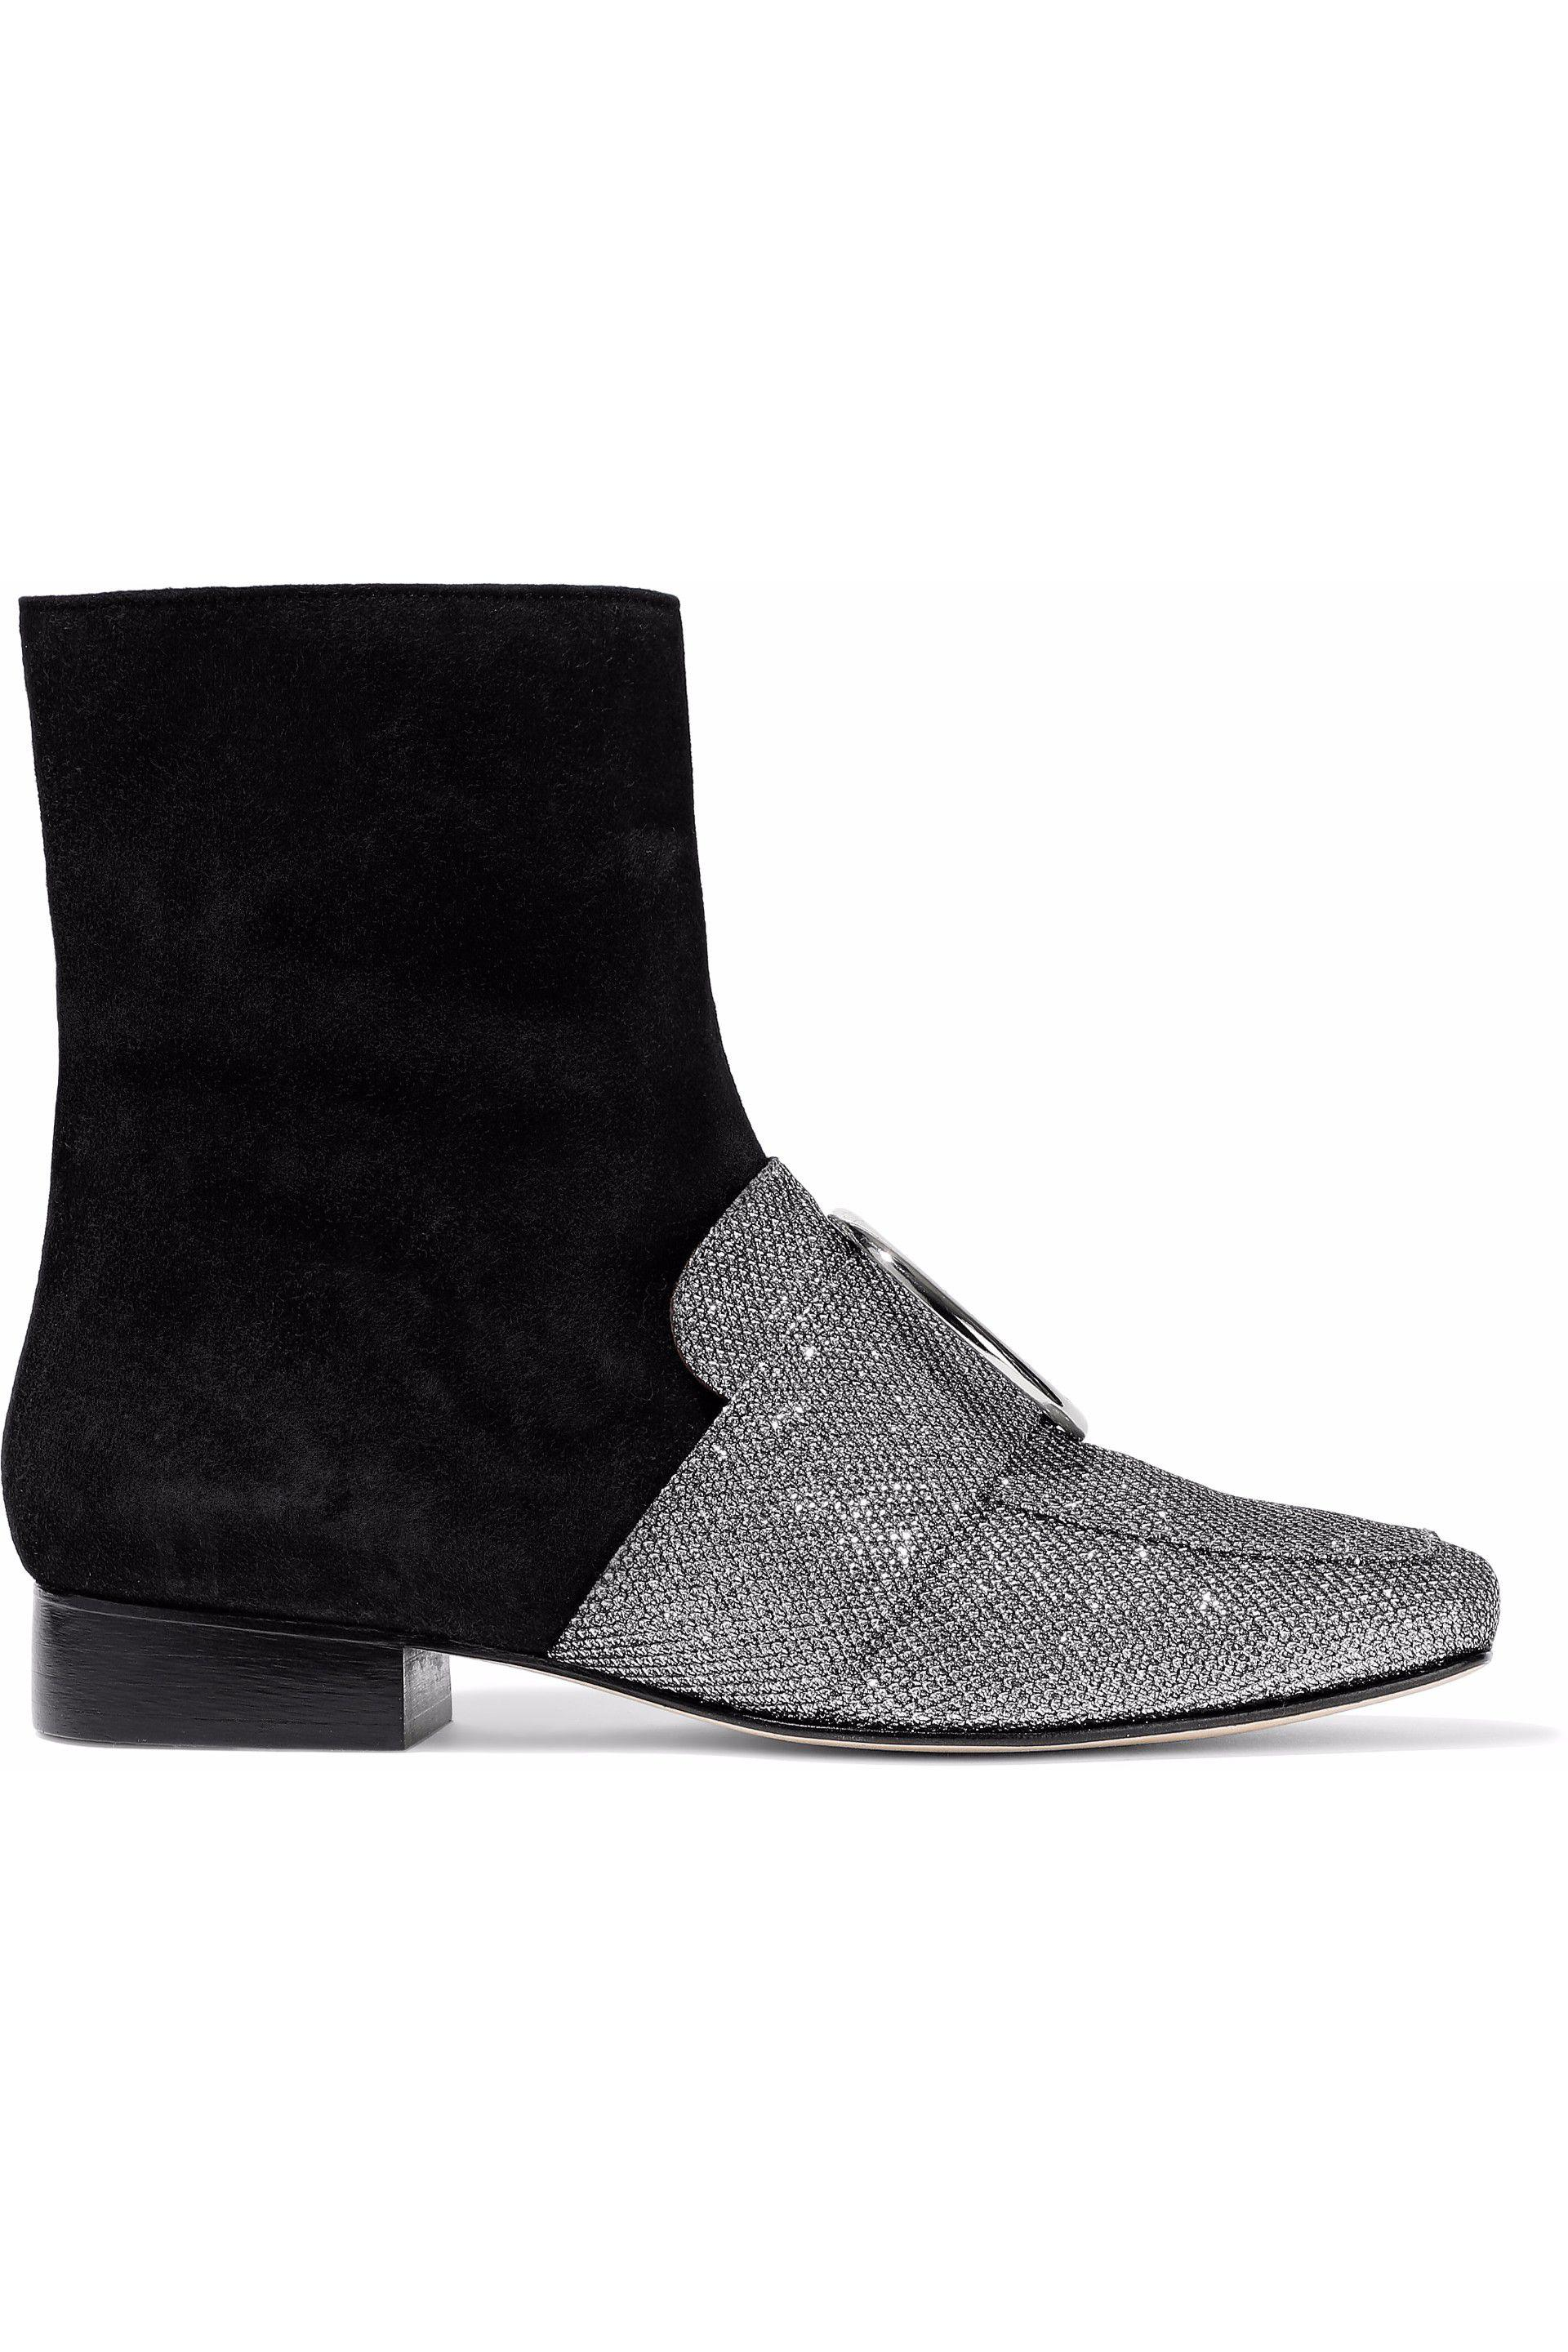 DORATEYMUR Suede ankle boots Cheap Pre Order Cheap Price h0rebMwD9